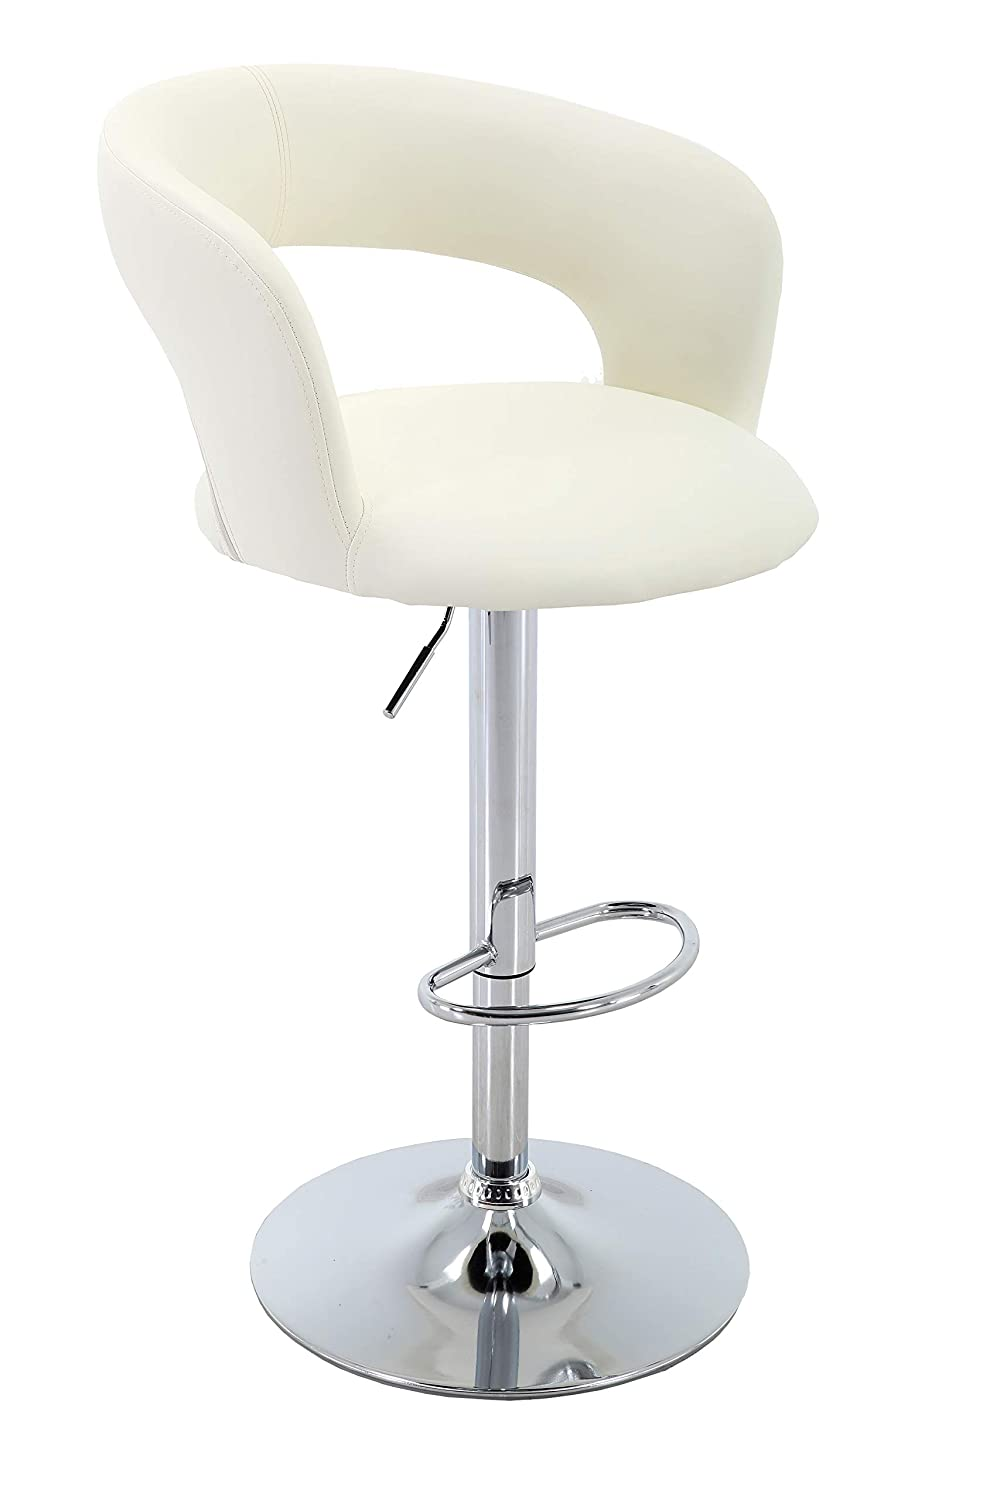 Brage Living Adjustable Height Barstool PU-Leather Bar Stool with Footrest – Ivory